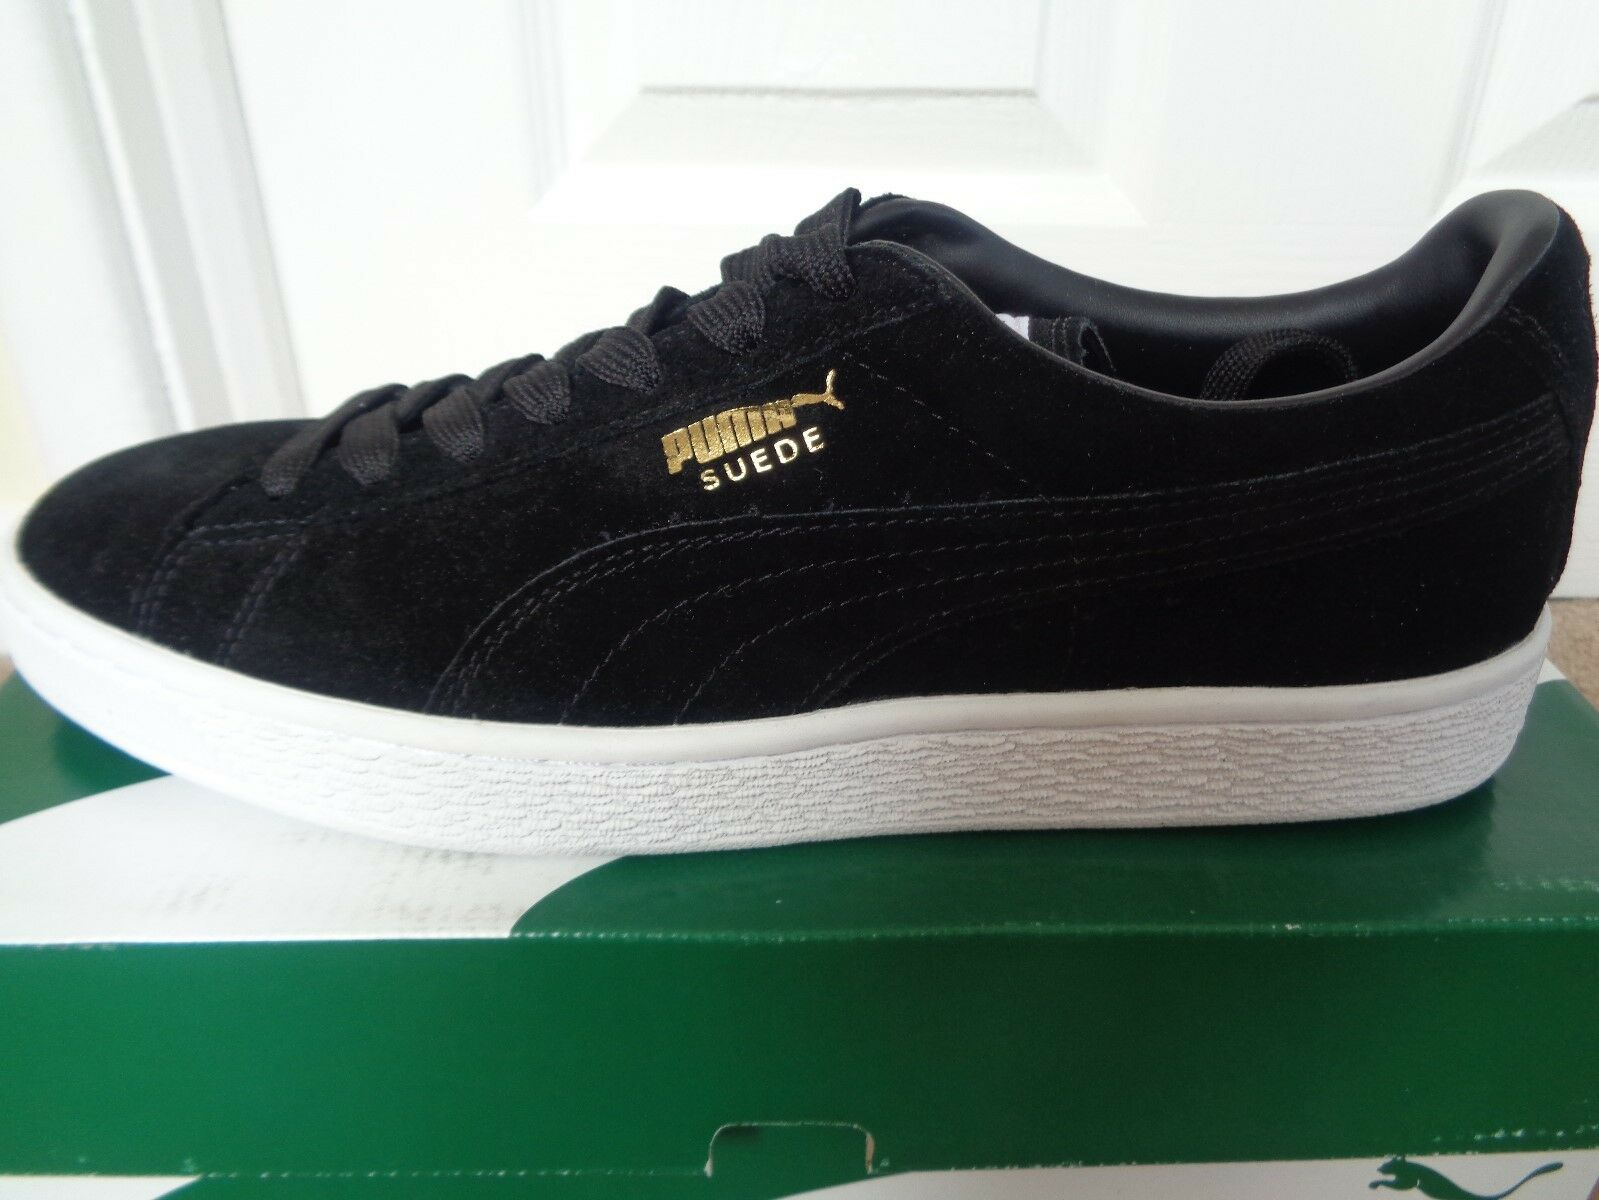 Puma Suede classic+ trainers  chaussures  sneakers 352634 87 uk 8 eu 42 us 9 NEW+BOX